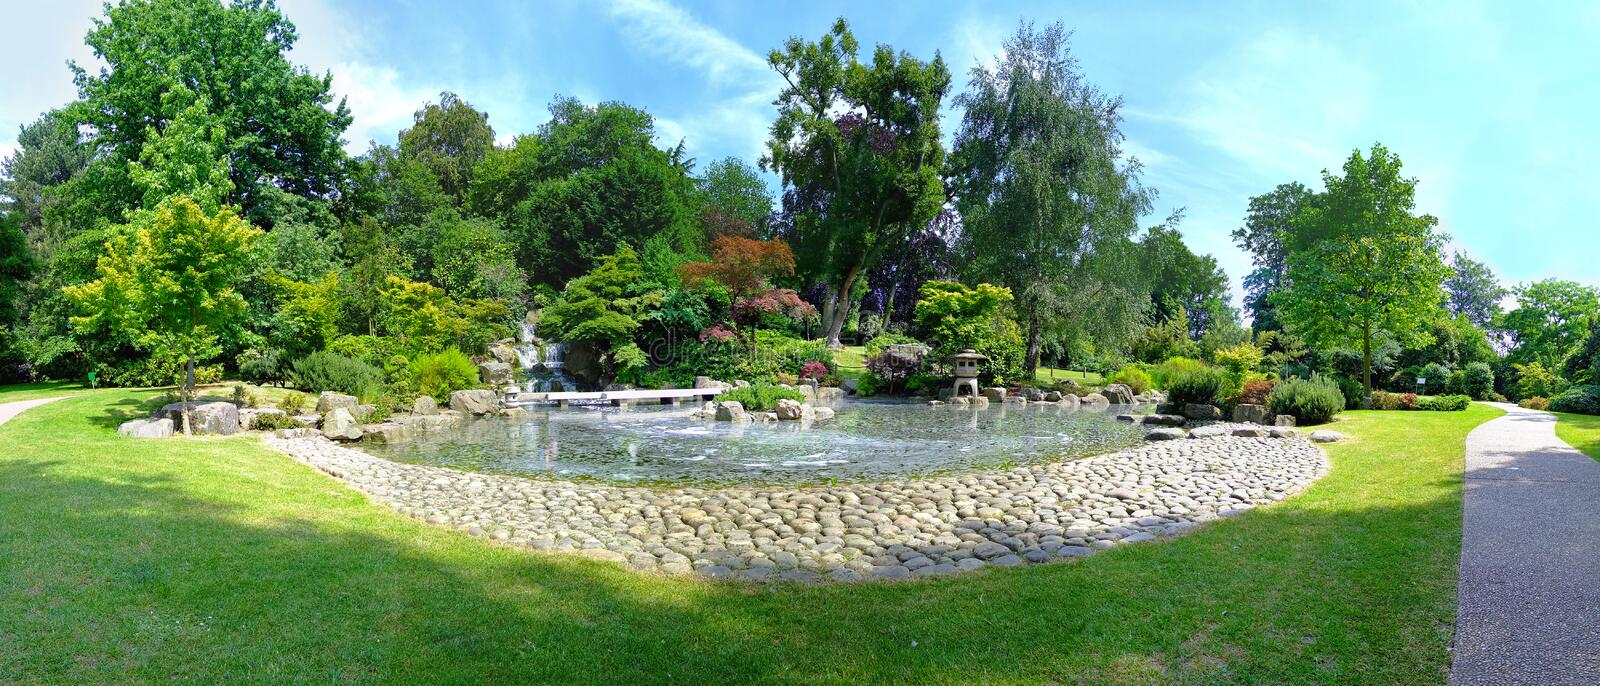 Download Kyoto garden stock image. Image of pond, kyoto, tree - 33652937